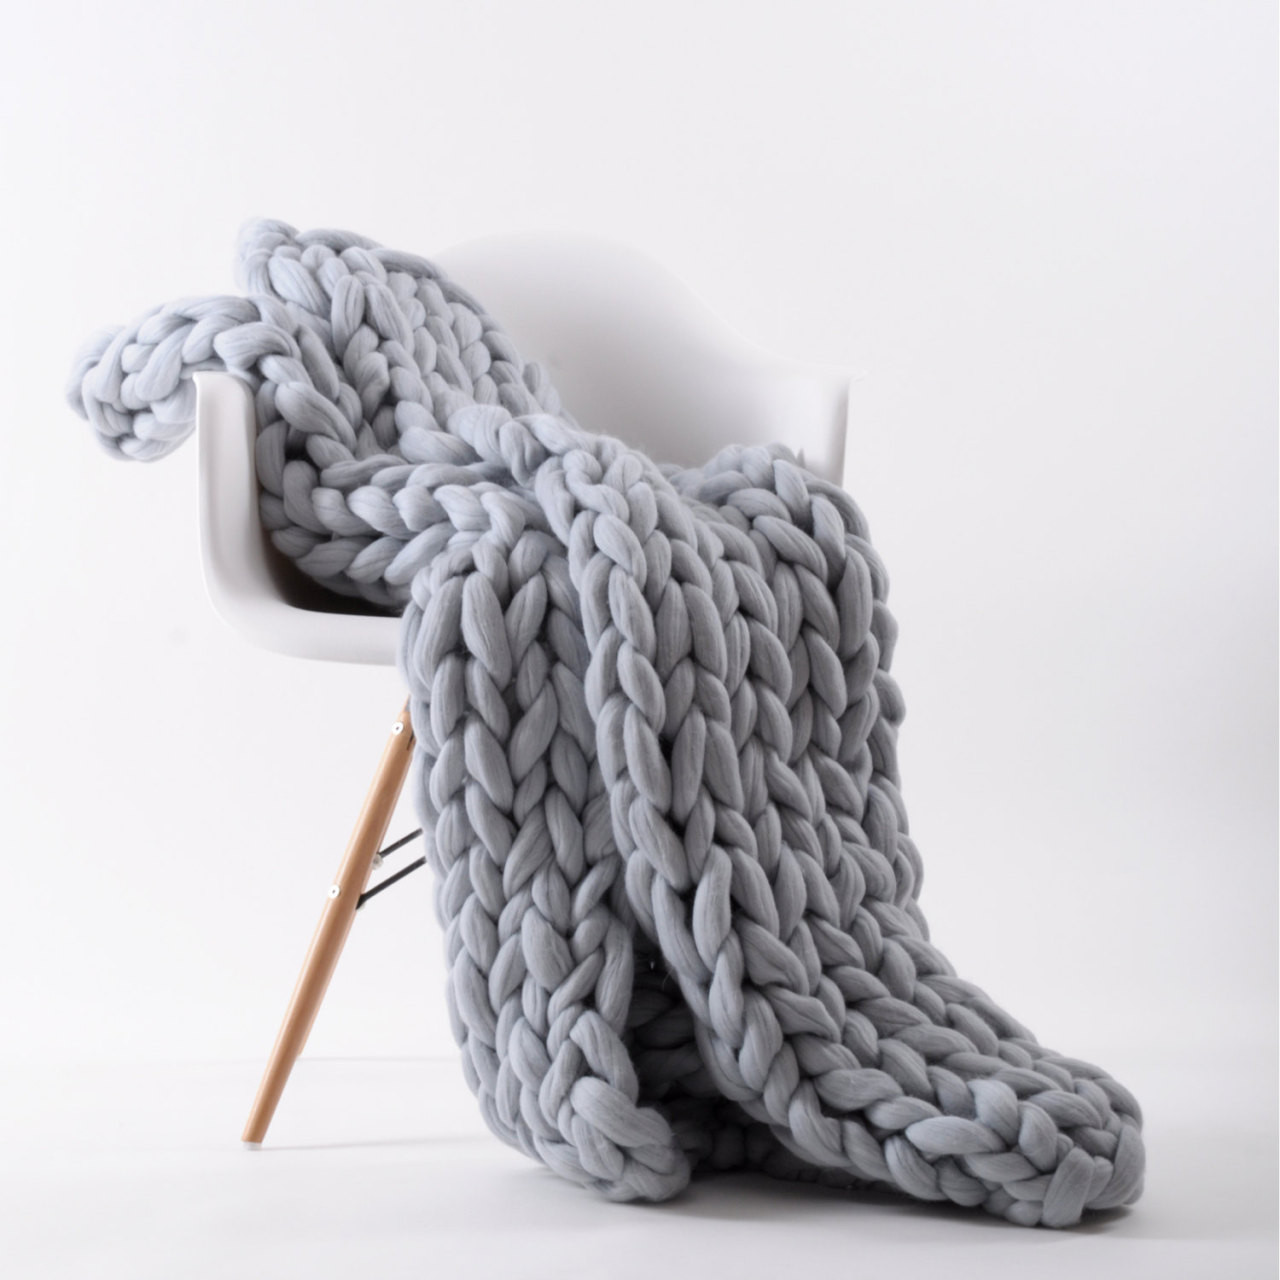 Giant Yarn Blanket Unique Culture N Lifestyle — Stunning Chunky Blankets and Giant Of Unique 44 Images Giant Yarn Blanket